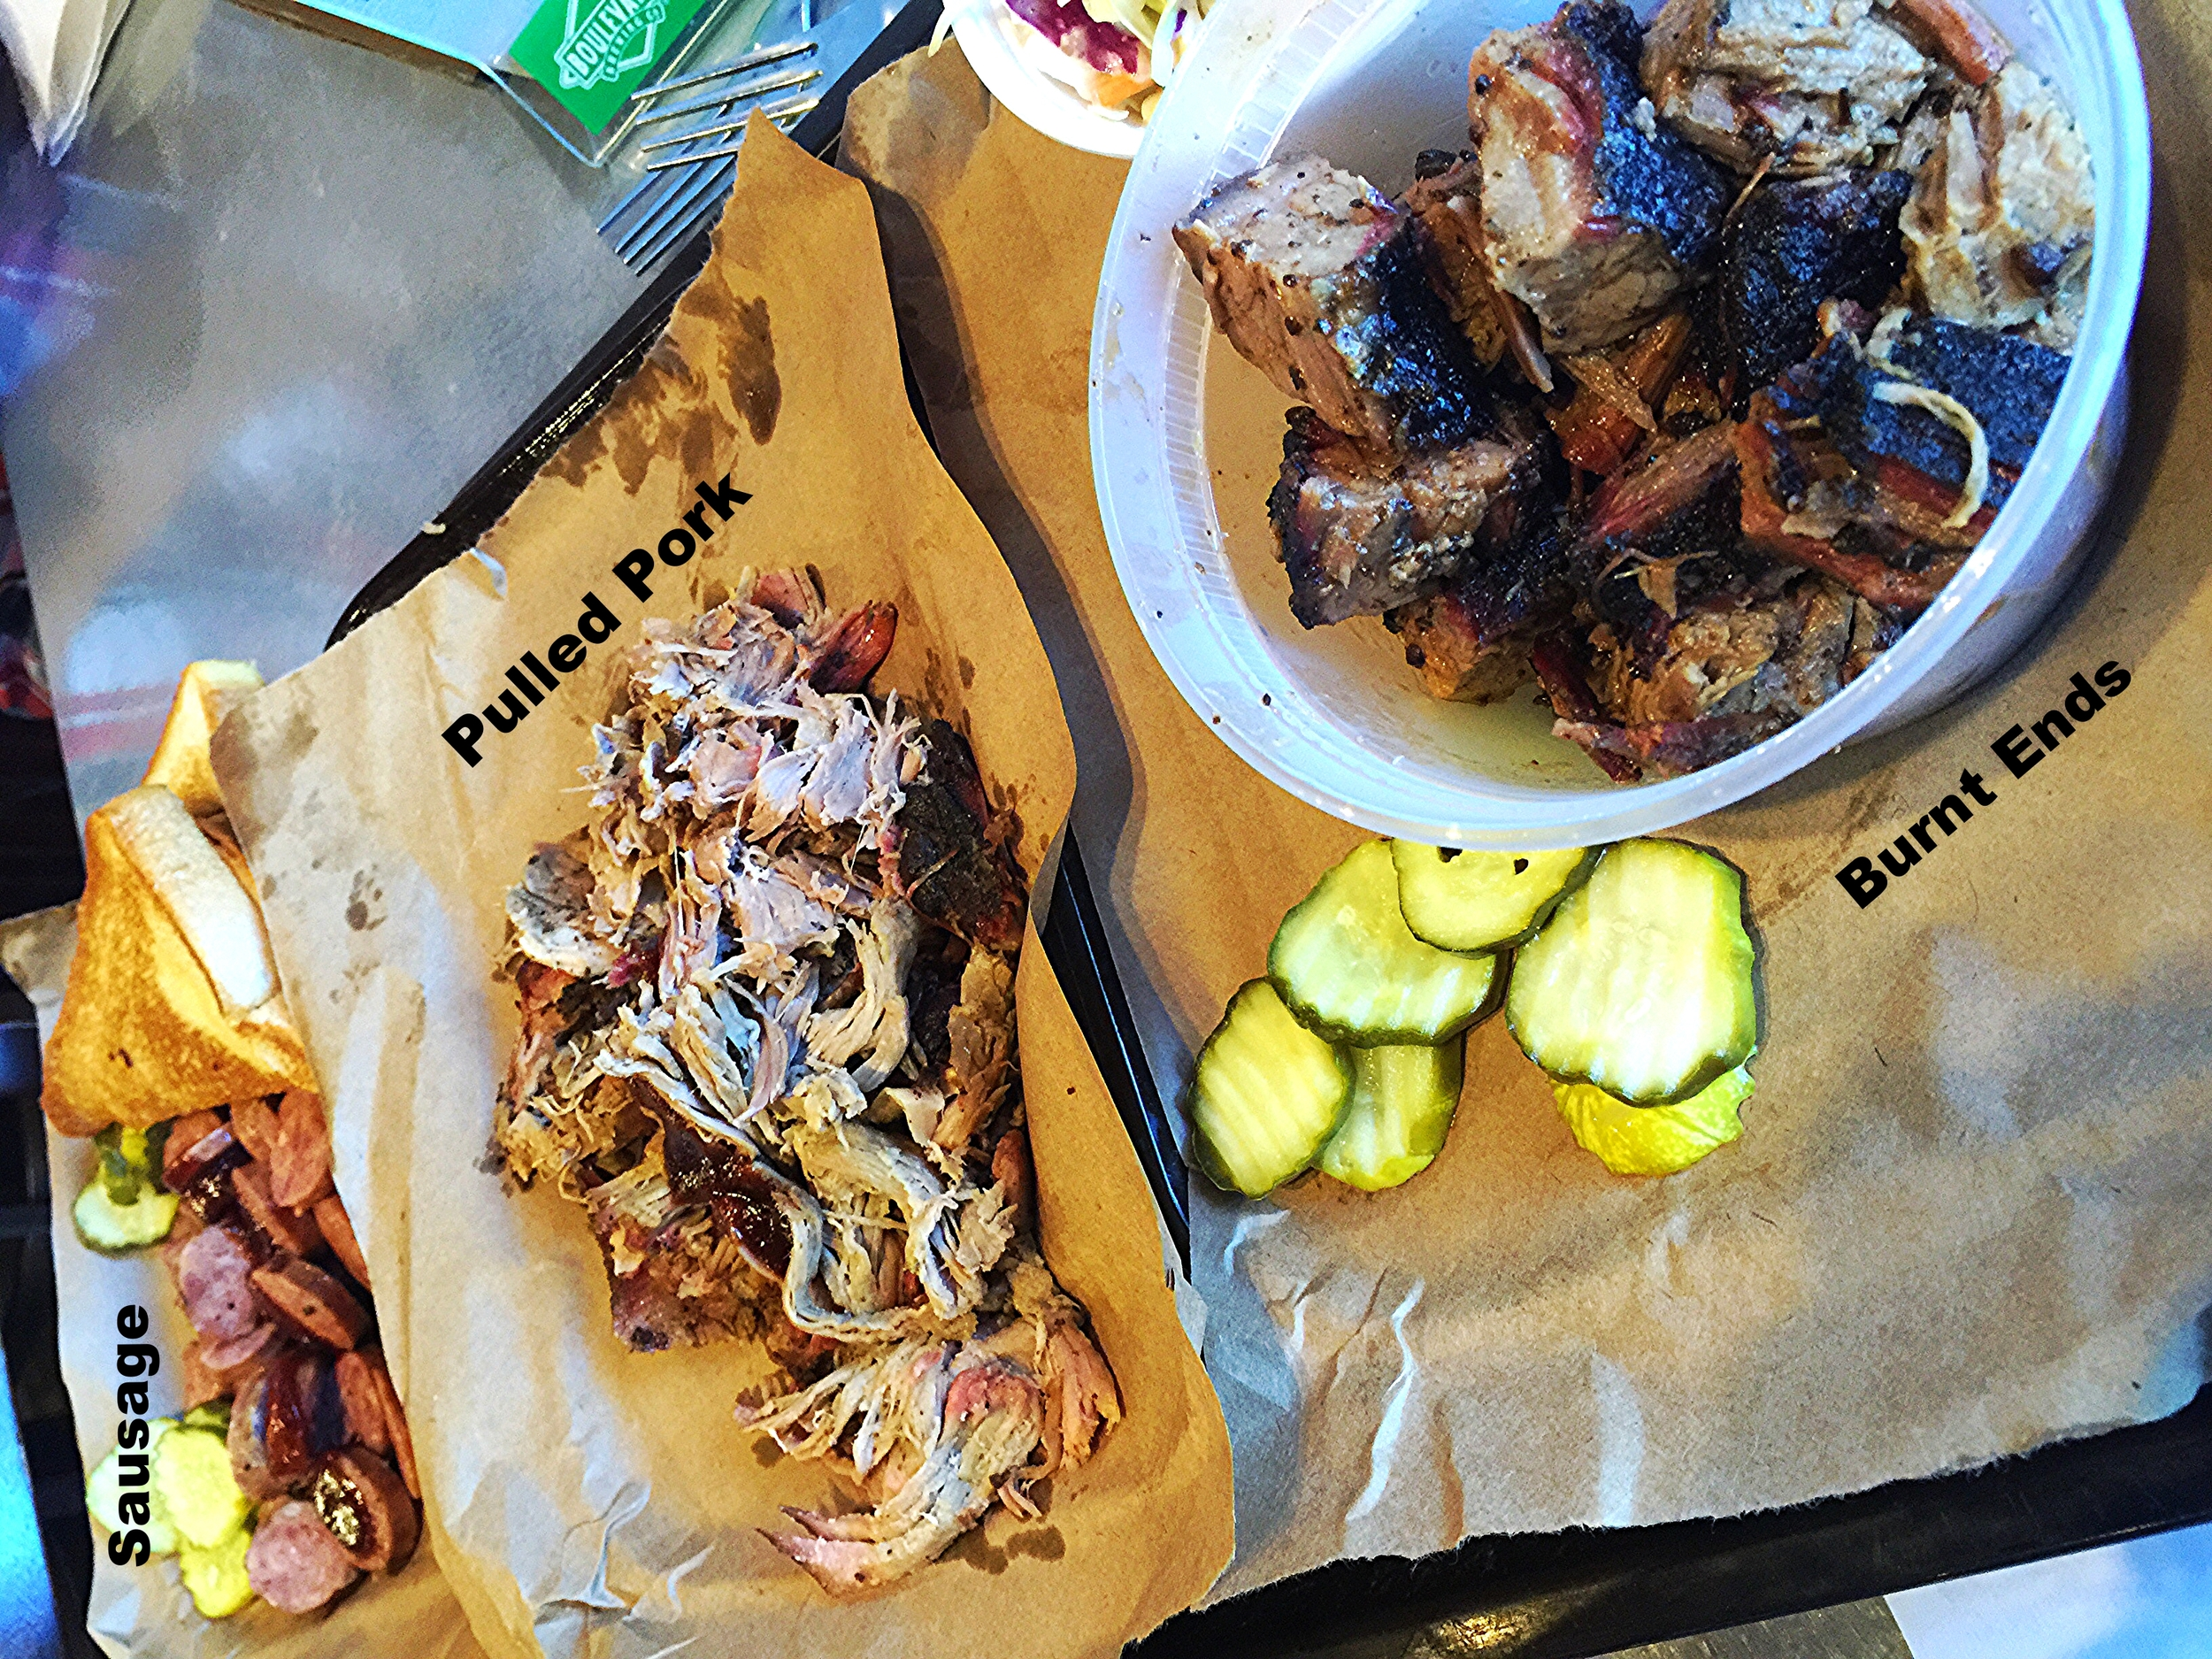 Joes BBQ of Kansas City. Yeah!!! I ordered all the meats!